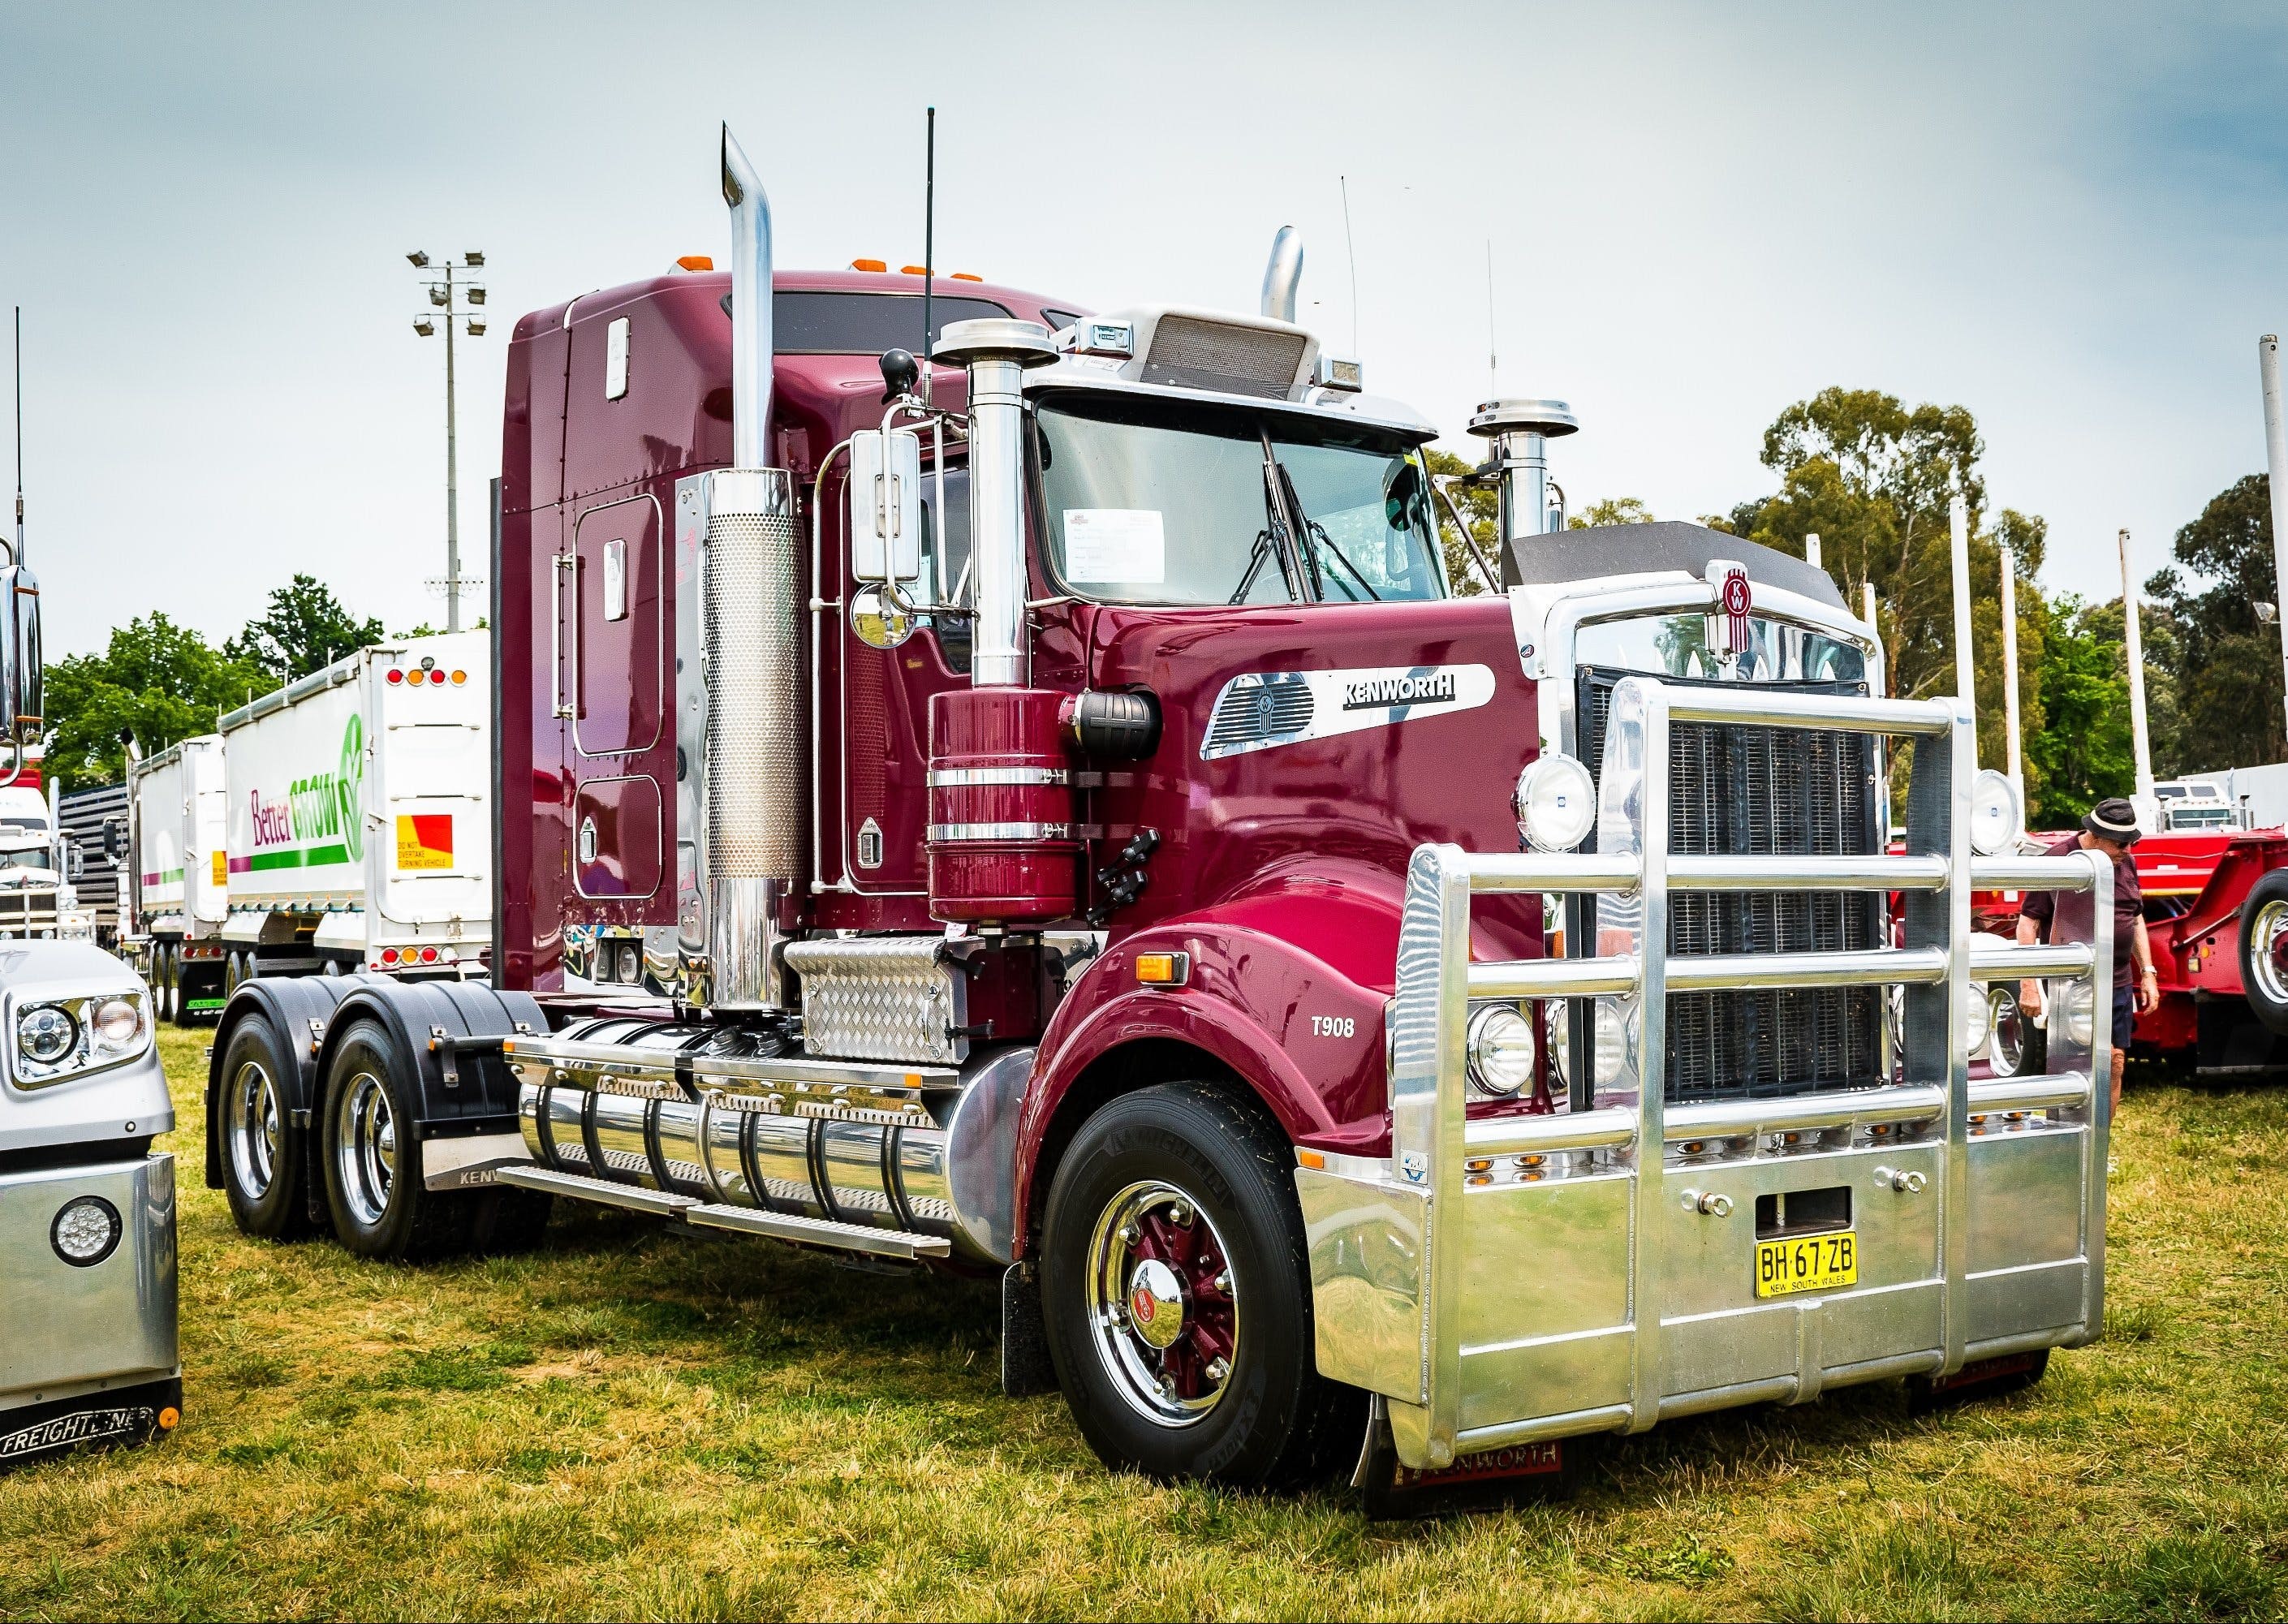 Dane Ballinger Memorial Truck Show - Accommodation in Surfers Paradise